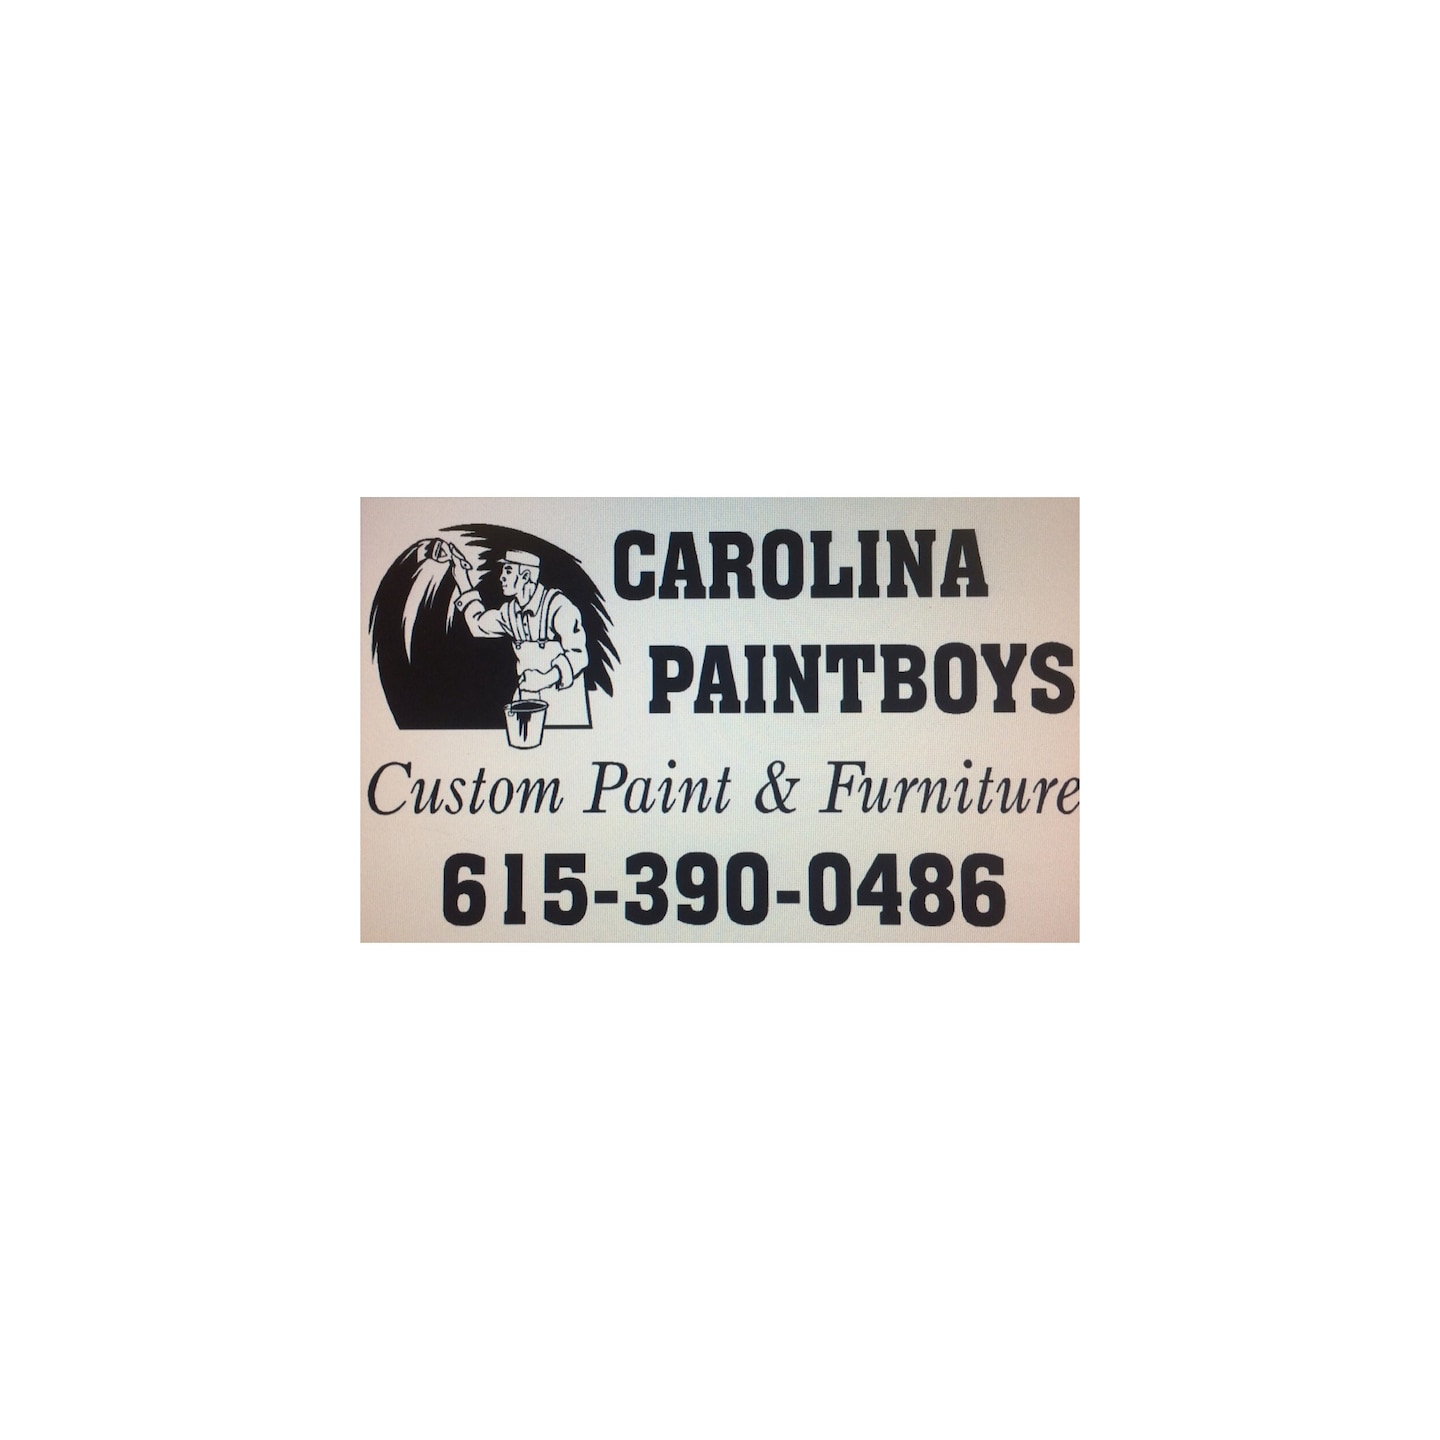 Carolina Paintboys